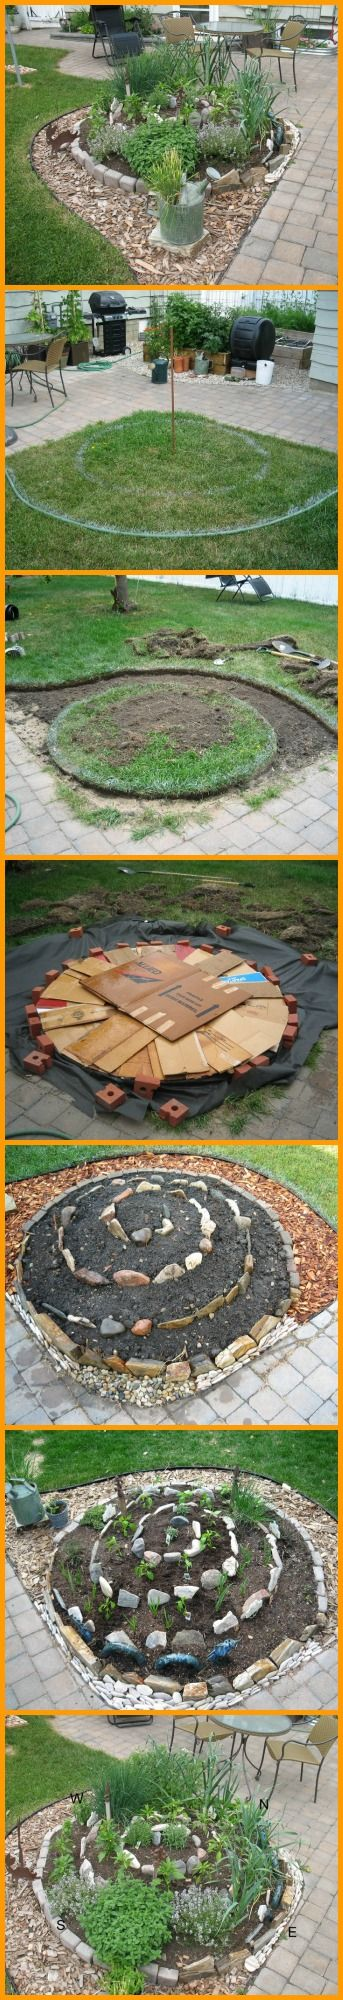 Plant your herbs in a unique way. This spiral garden shows you how. http://theownerbuildernetwork.co/09in